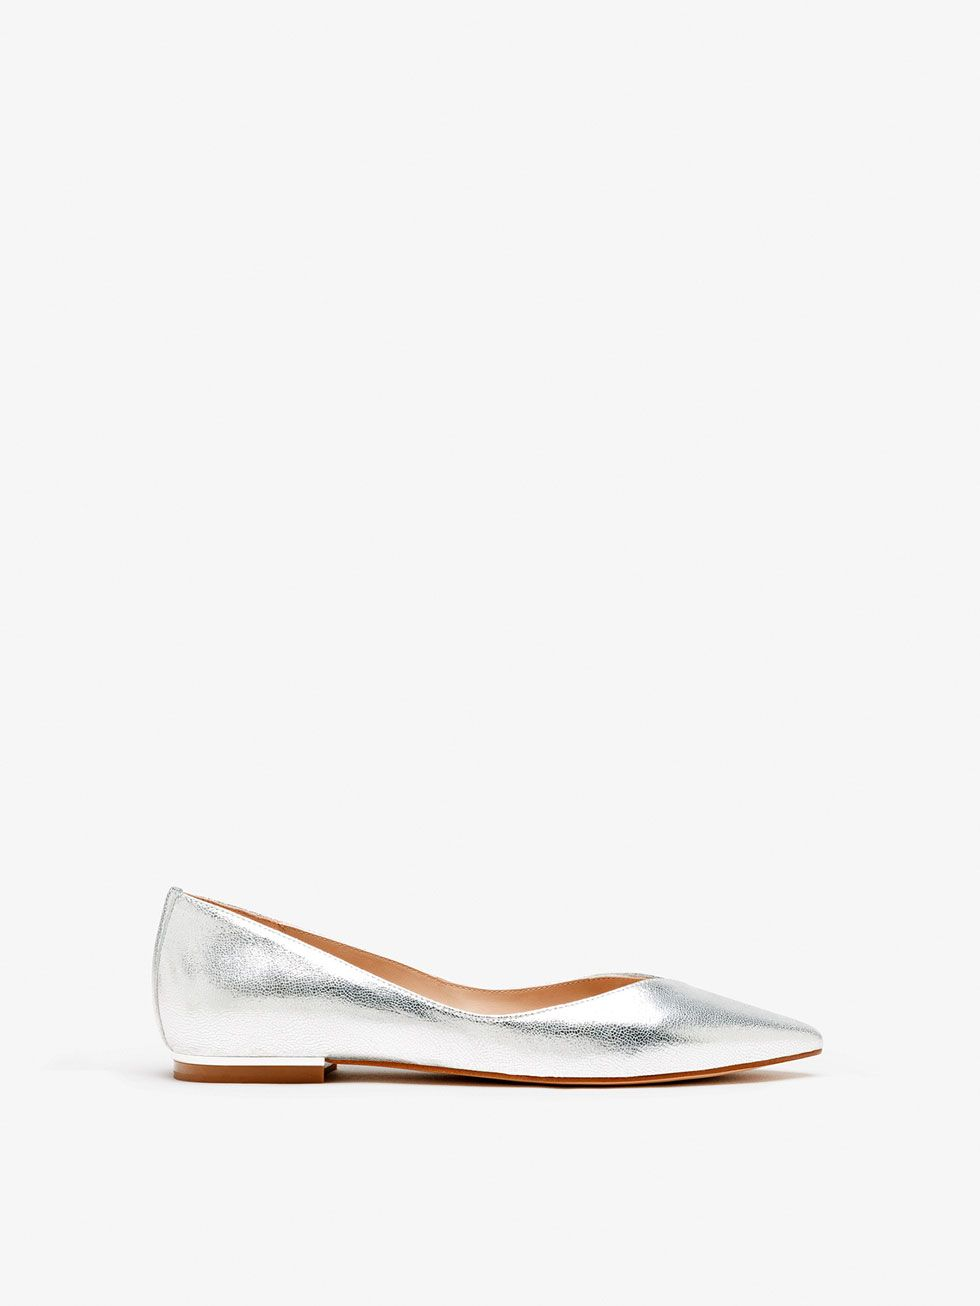 fa82ad19d96 Spring summer 2017 Women´s LAMINATED LEATHER BALLET FLATS at Massimo Dutti  for 64.95. Effortless elegance!